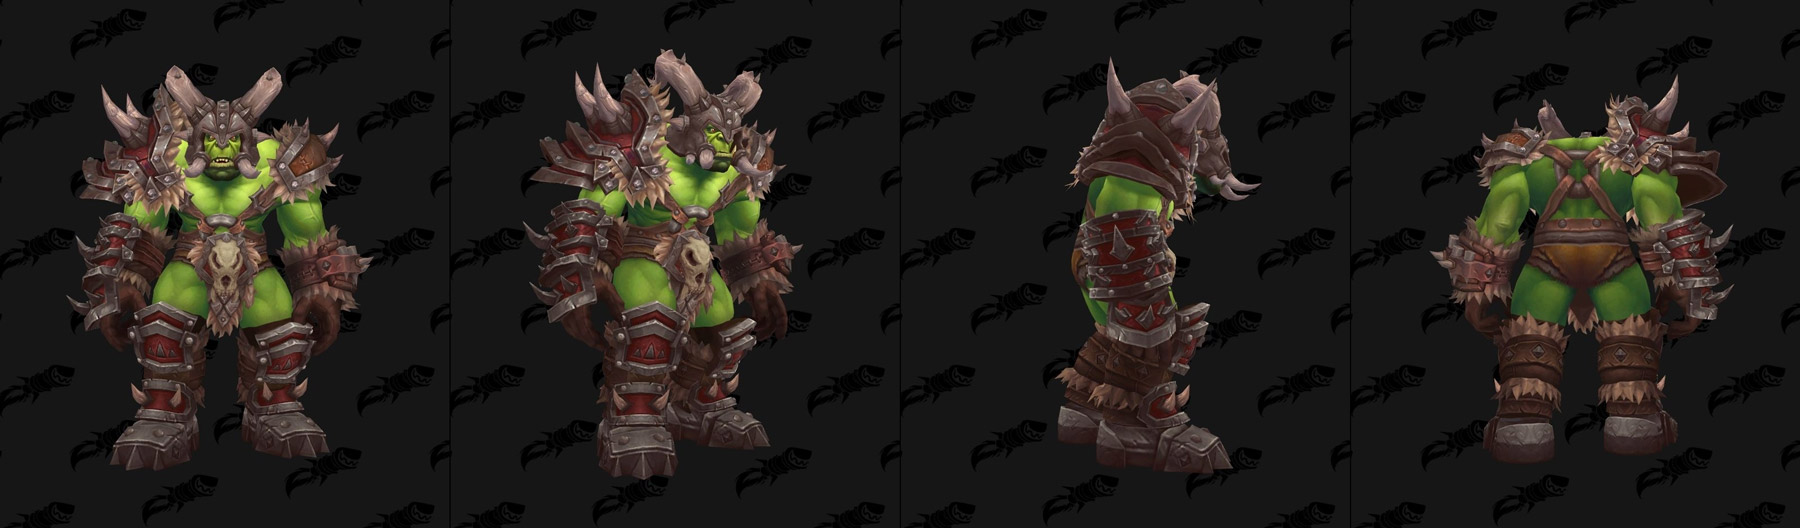 Ensemble clan Orc - Modèle masculin - Incomplet - Battle for Azeroth